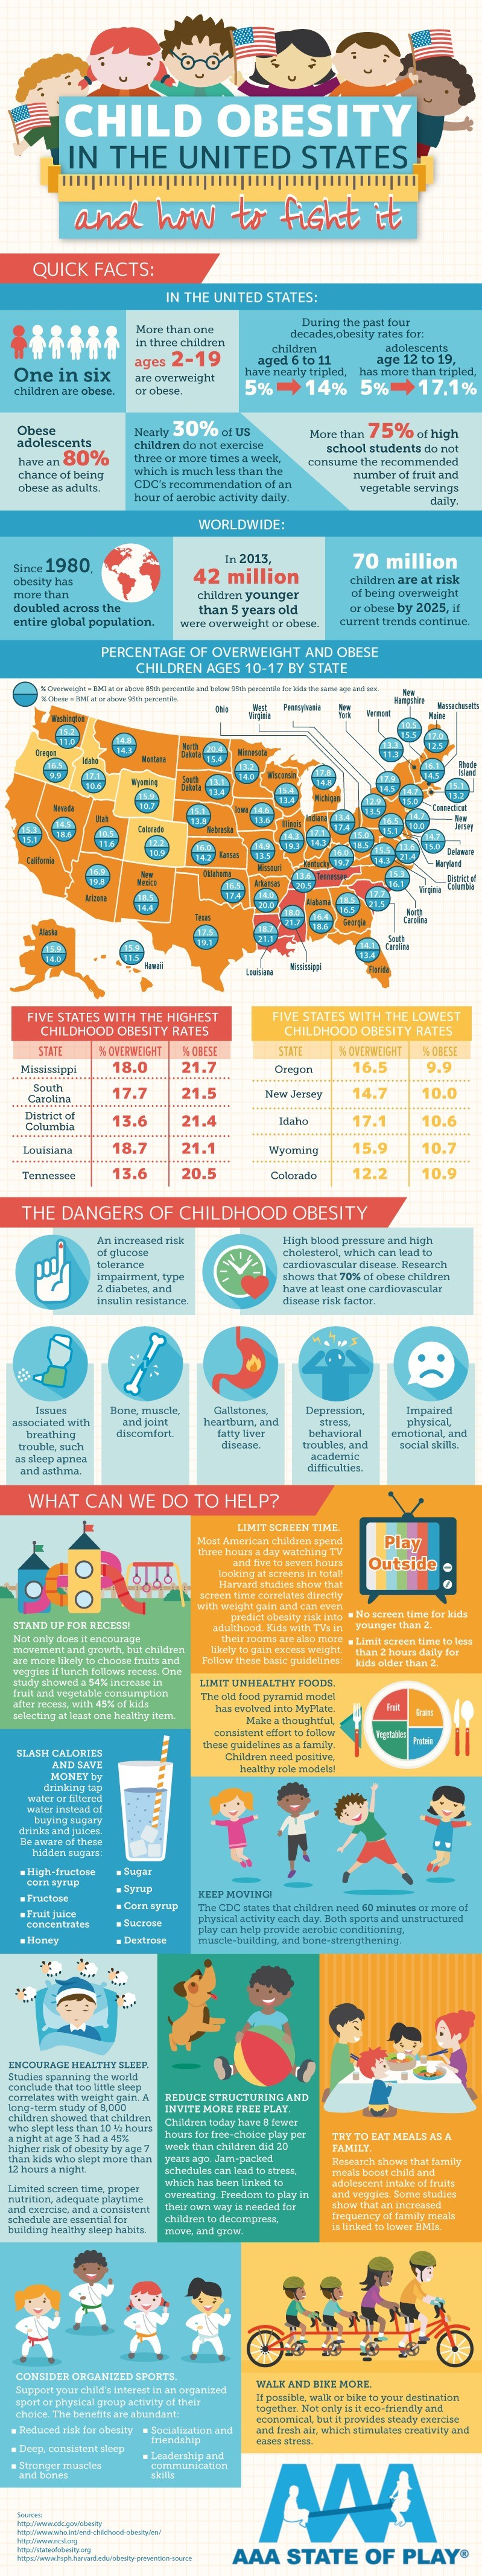 The Complete Guide To Child Obesity In The United States